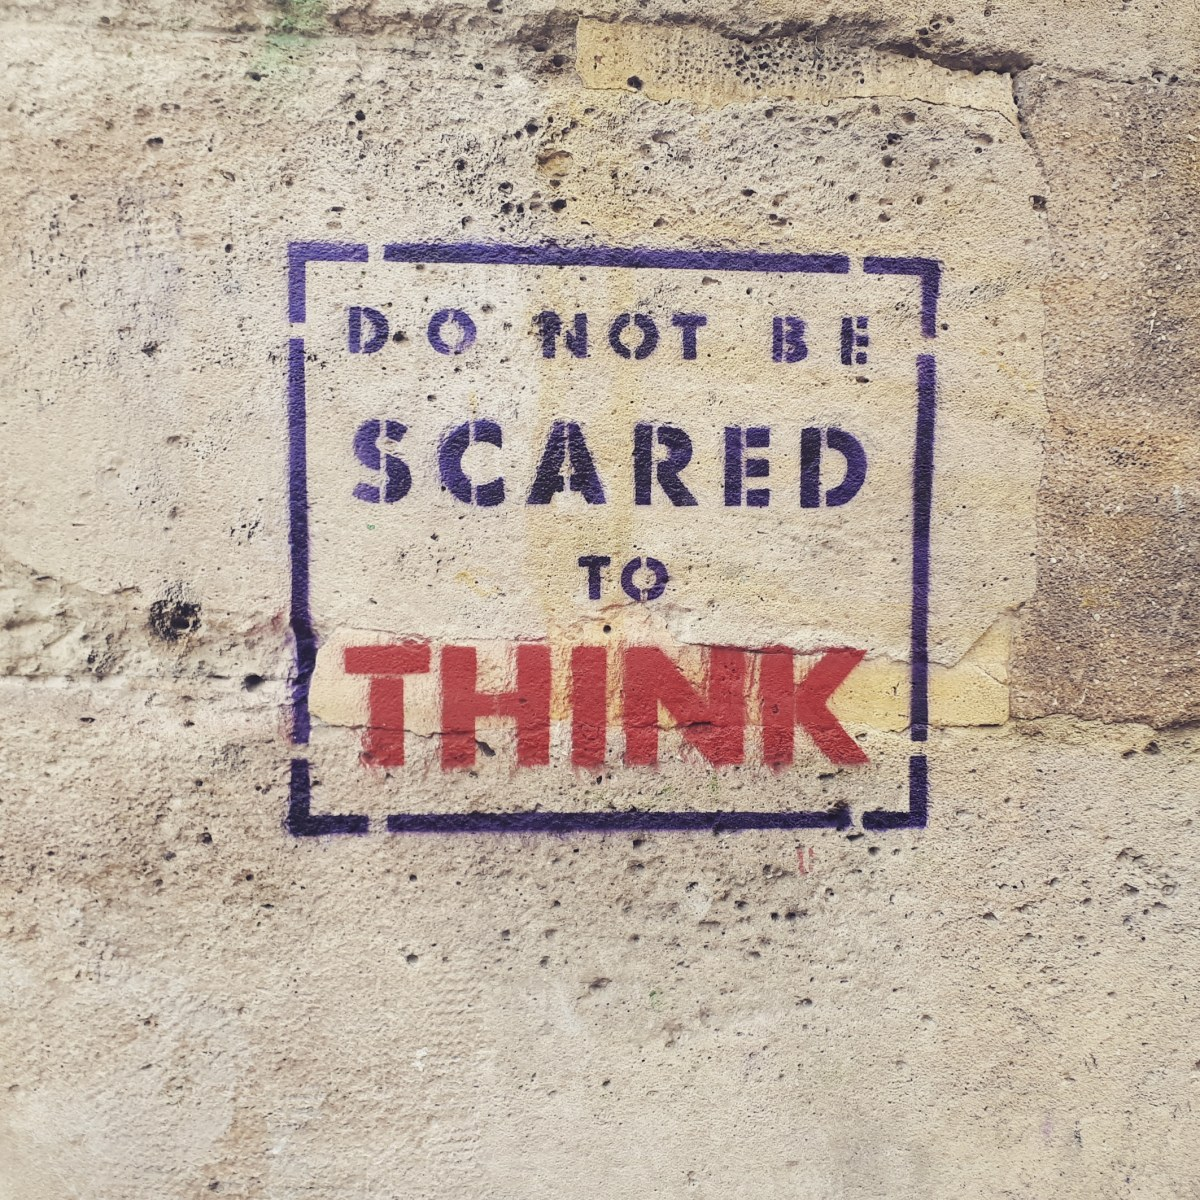 Street art in Montmartre: Do not be scared to think